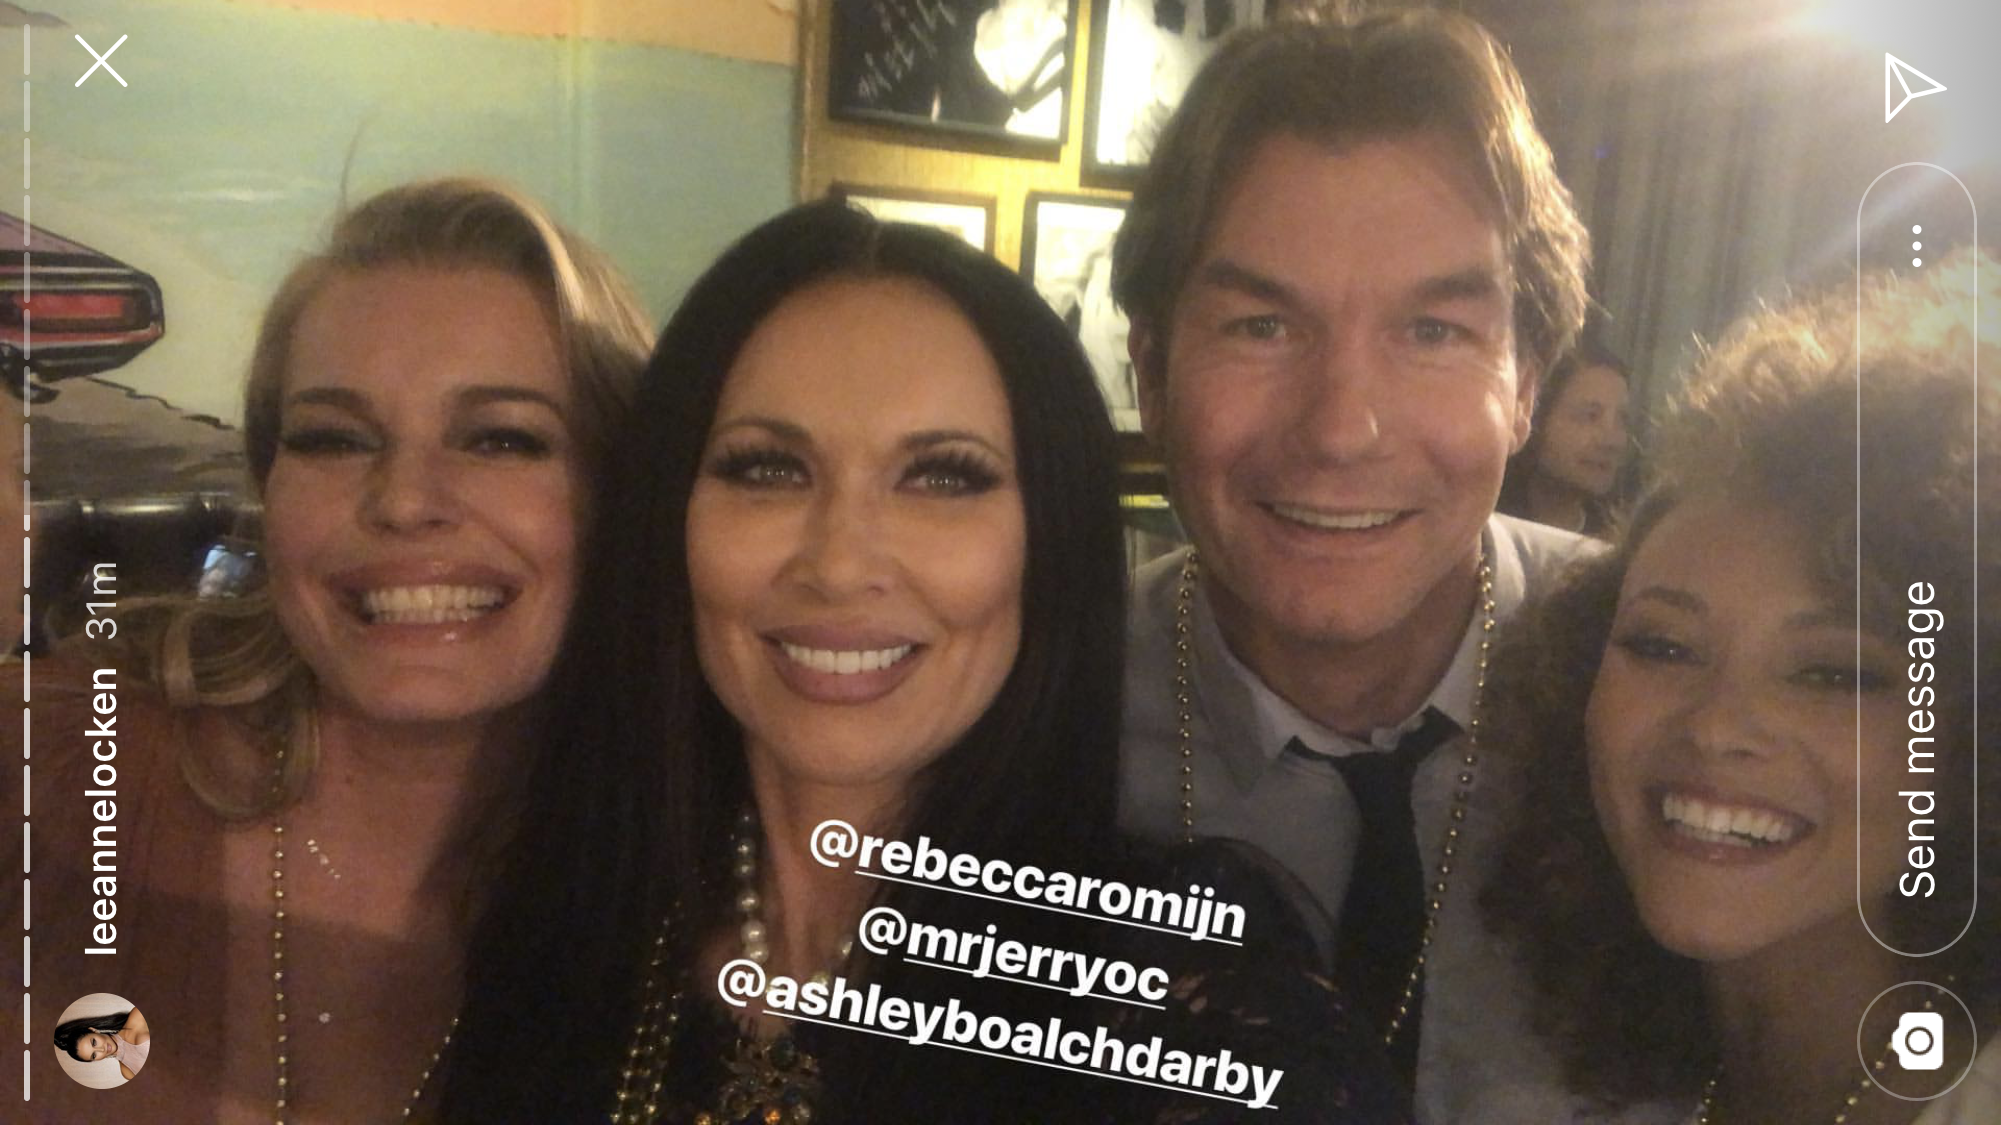 andy cohen baby shower, jerry o'connell, rebecca romijn, leann locken, ashley darby - Romijn and O'Connell posed with Locken and Real Housewives of Potomac 's Ashley Darby .